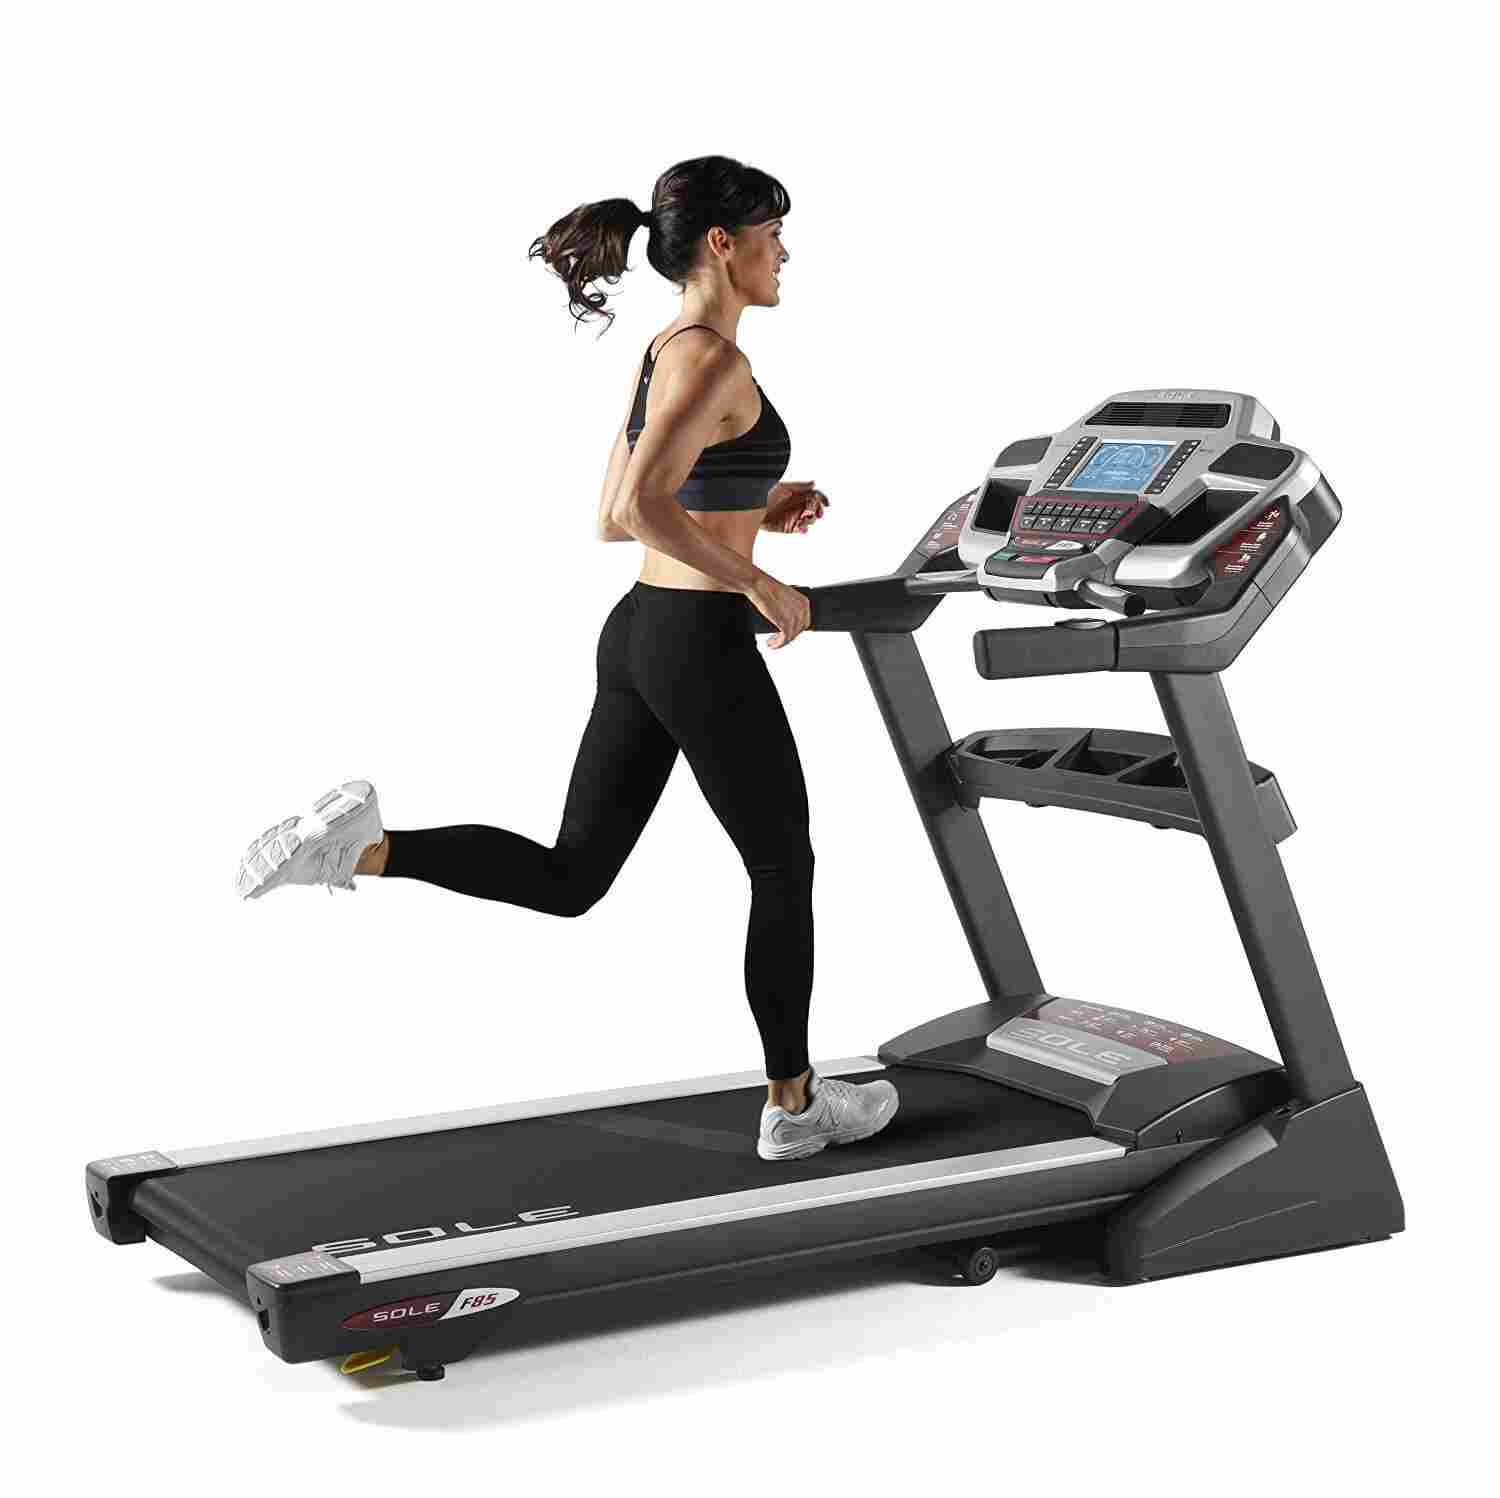 6. Sole F85 Treadmill